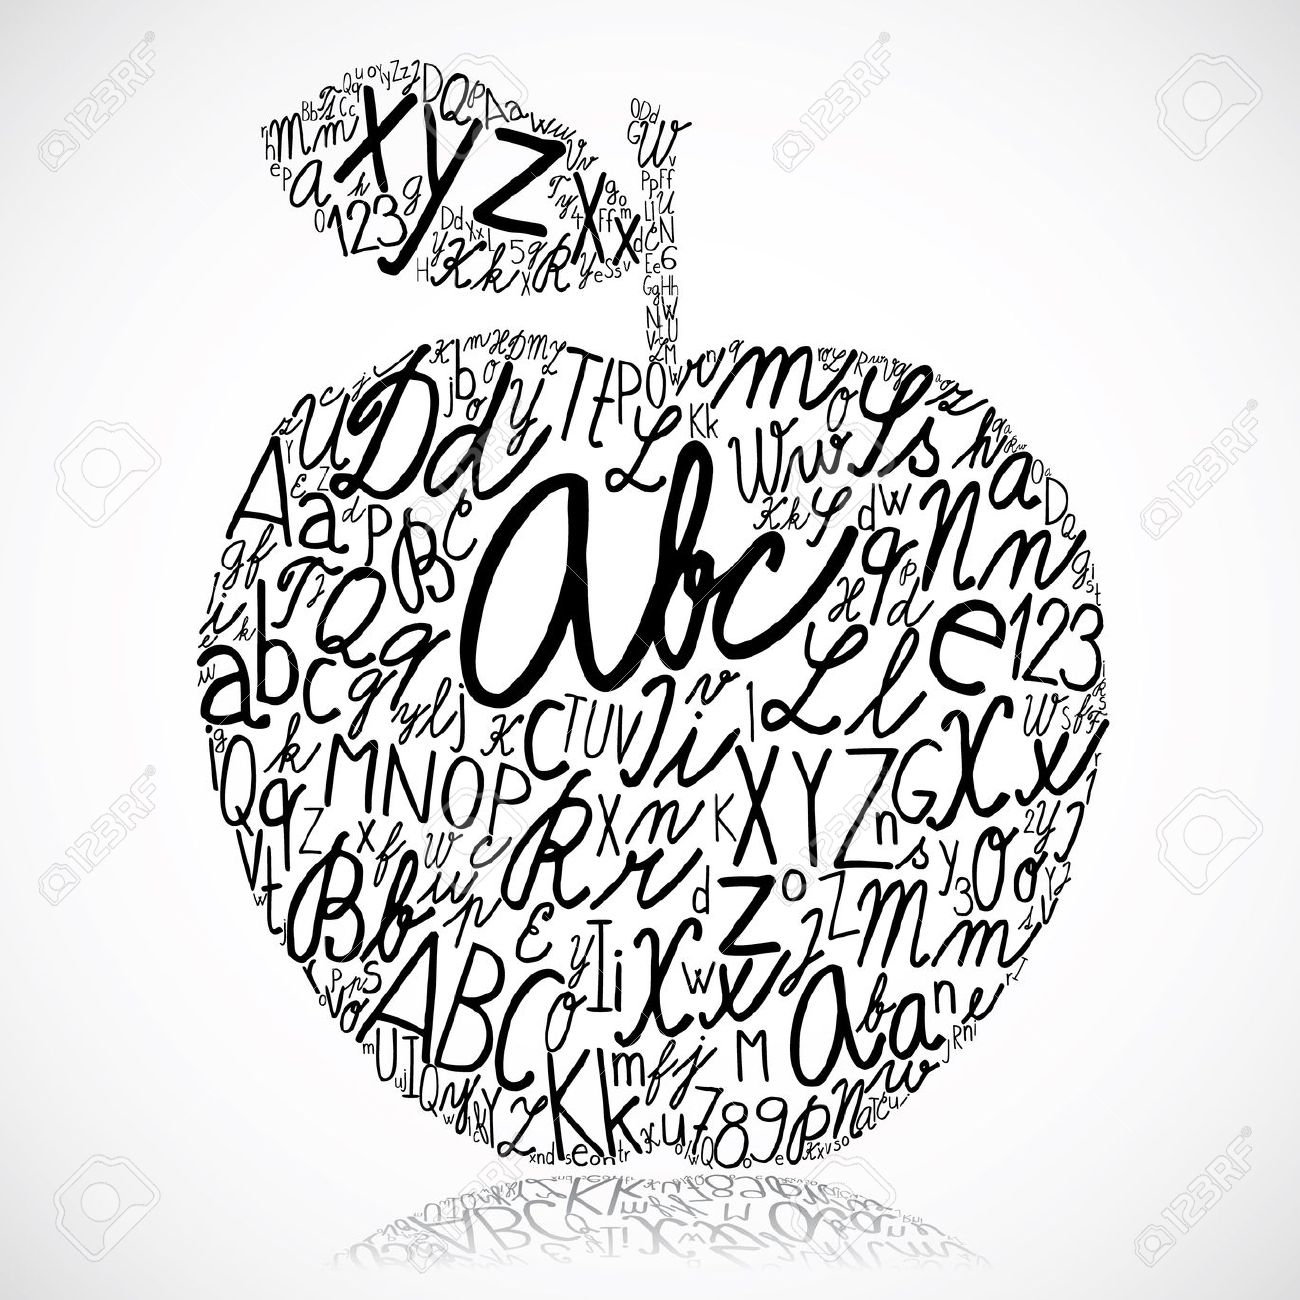 A alphabet letter apple clipart jpg black and white A alphabet letter apple clipart - ClipartFest jpg black and white